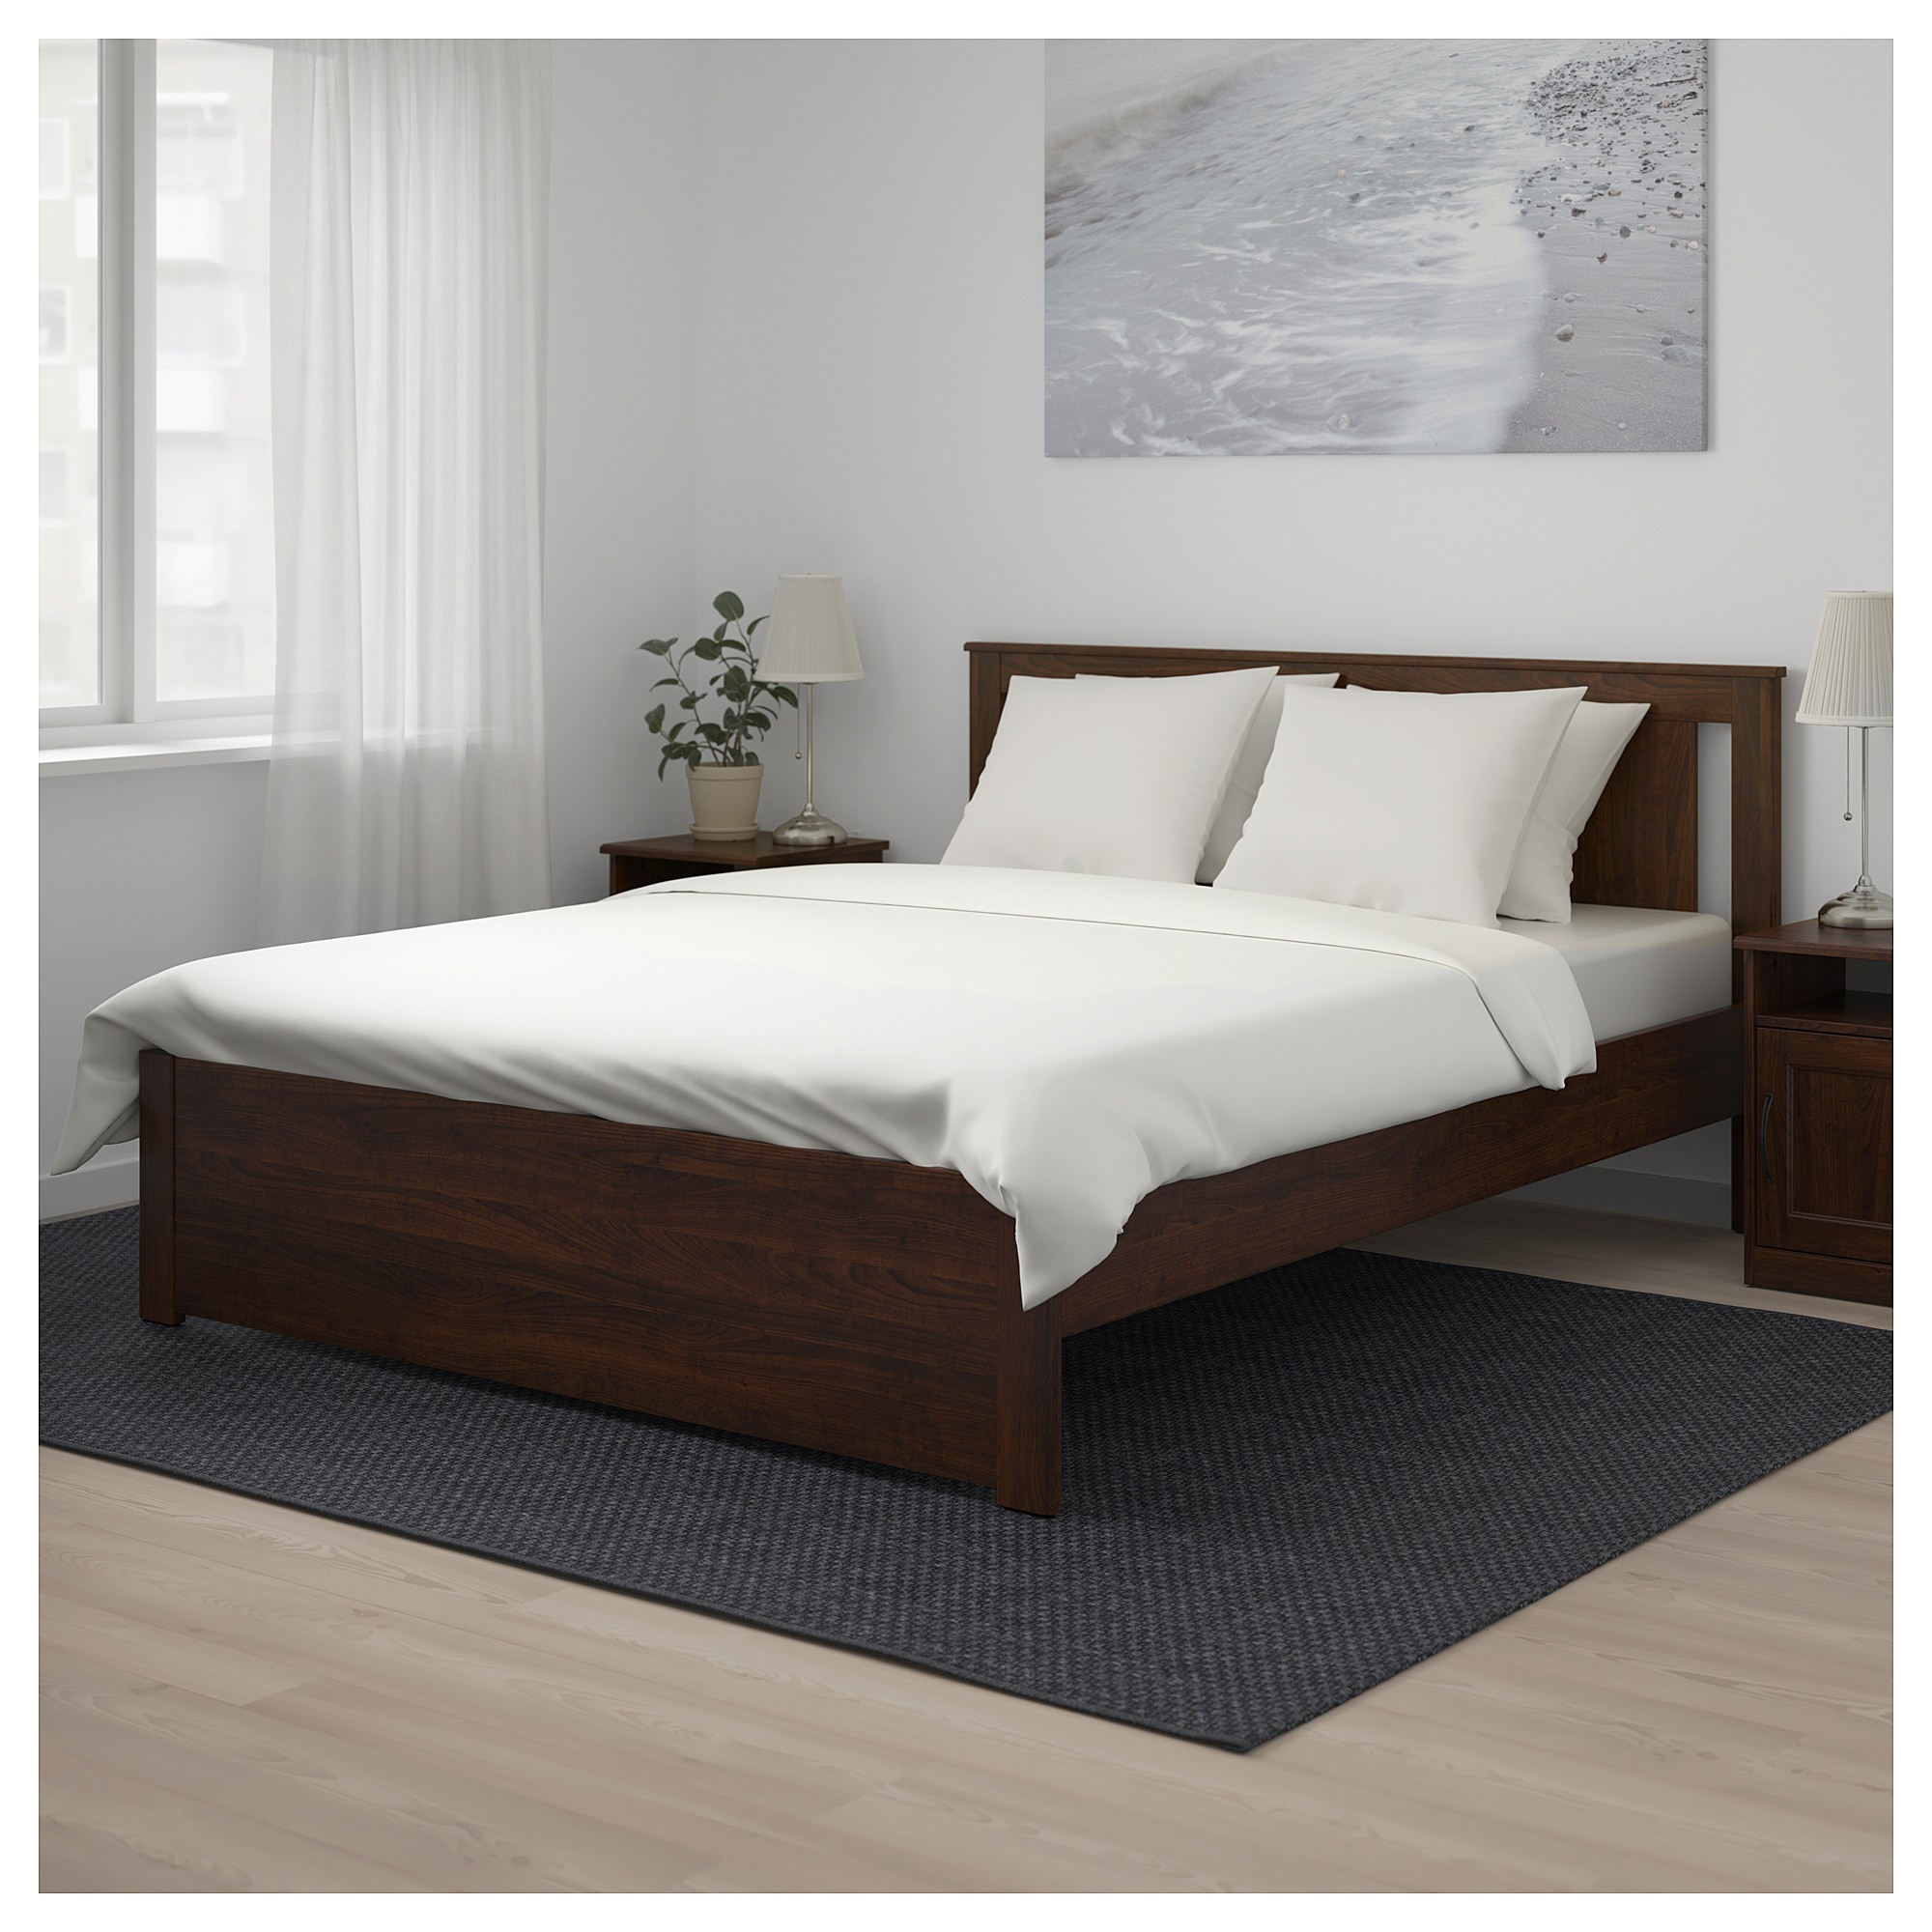 SONGESAND Bed frame Queen Luröy IKEA